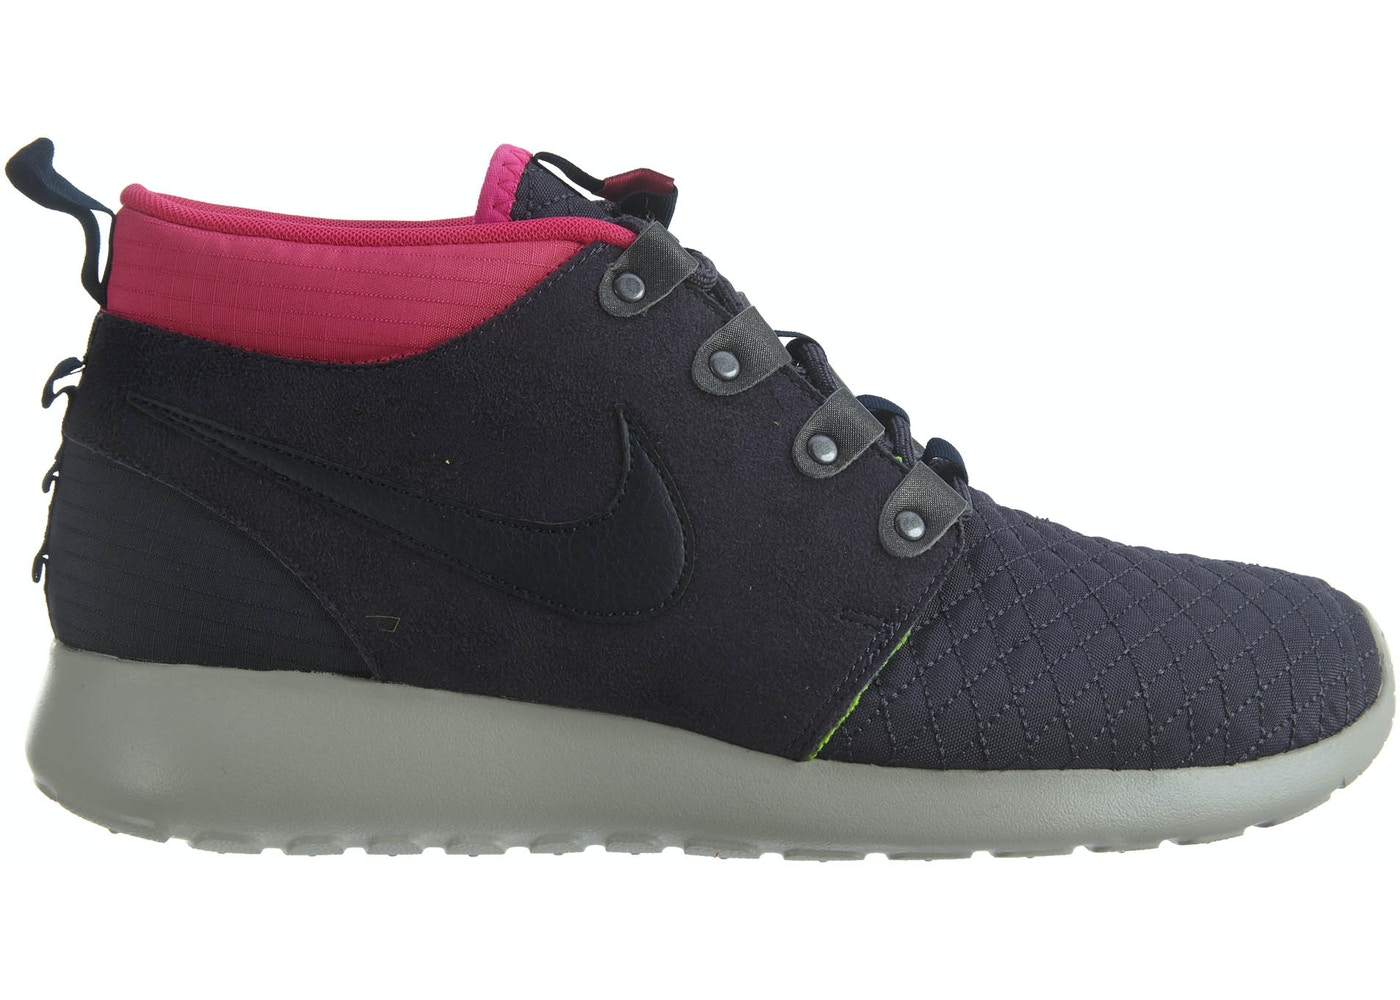 5379e9dc373f Sell. or Ask. Size --. View All Bids. Nike Roshe Run Sneakerboot Gridiron Dark  Obsidian-Pinkfl-Volt